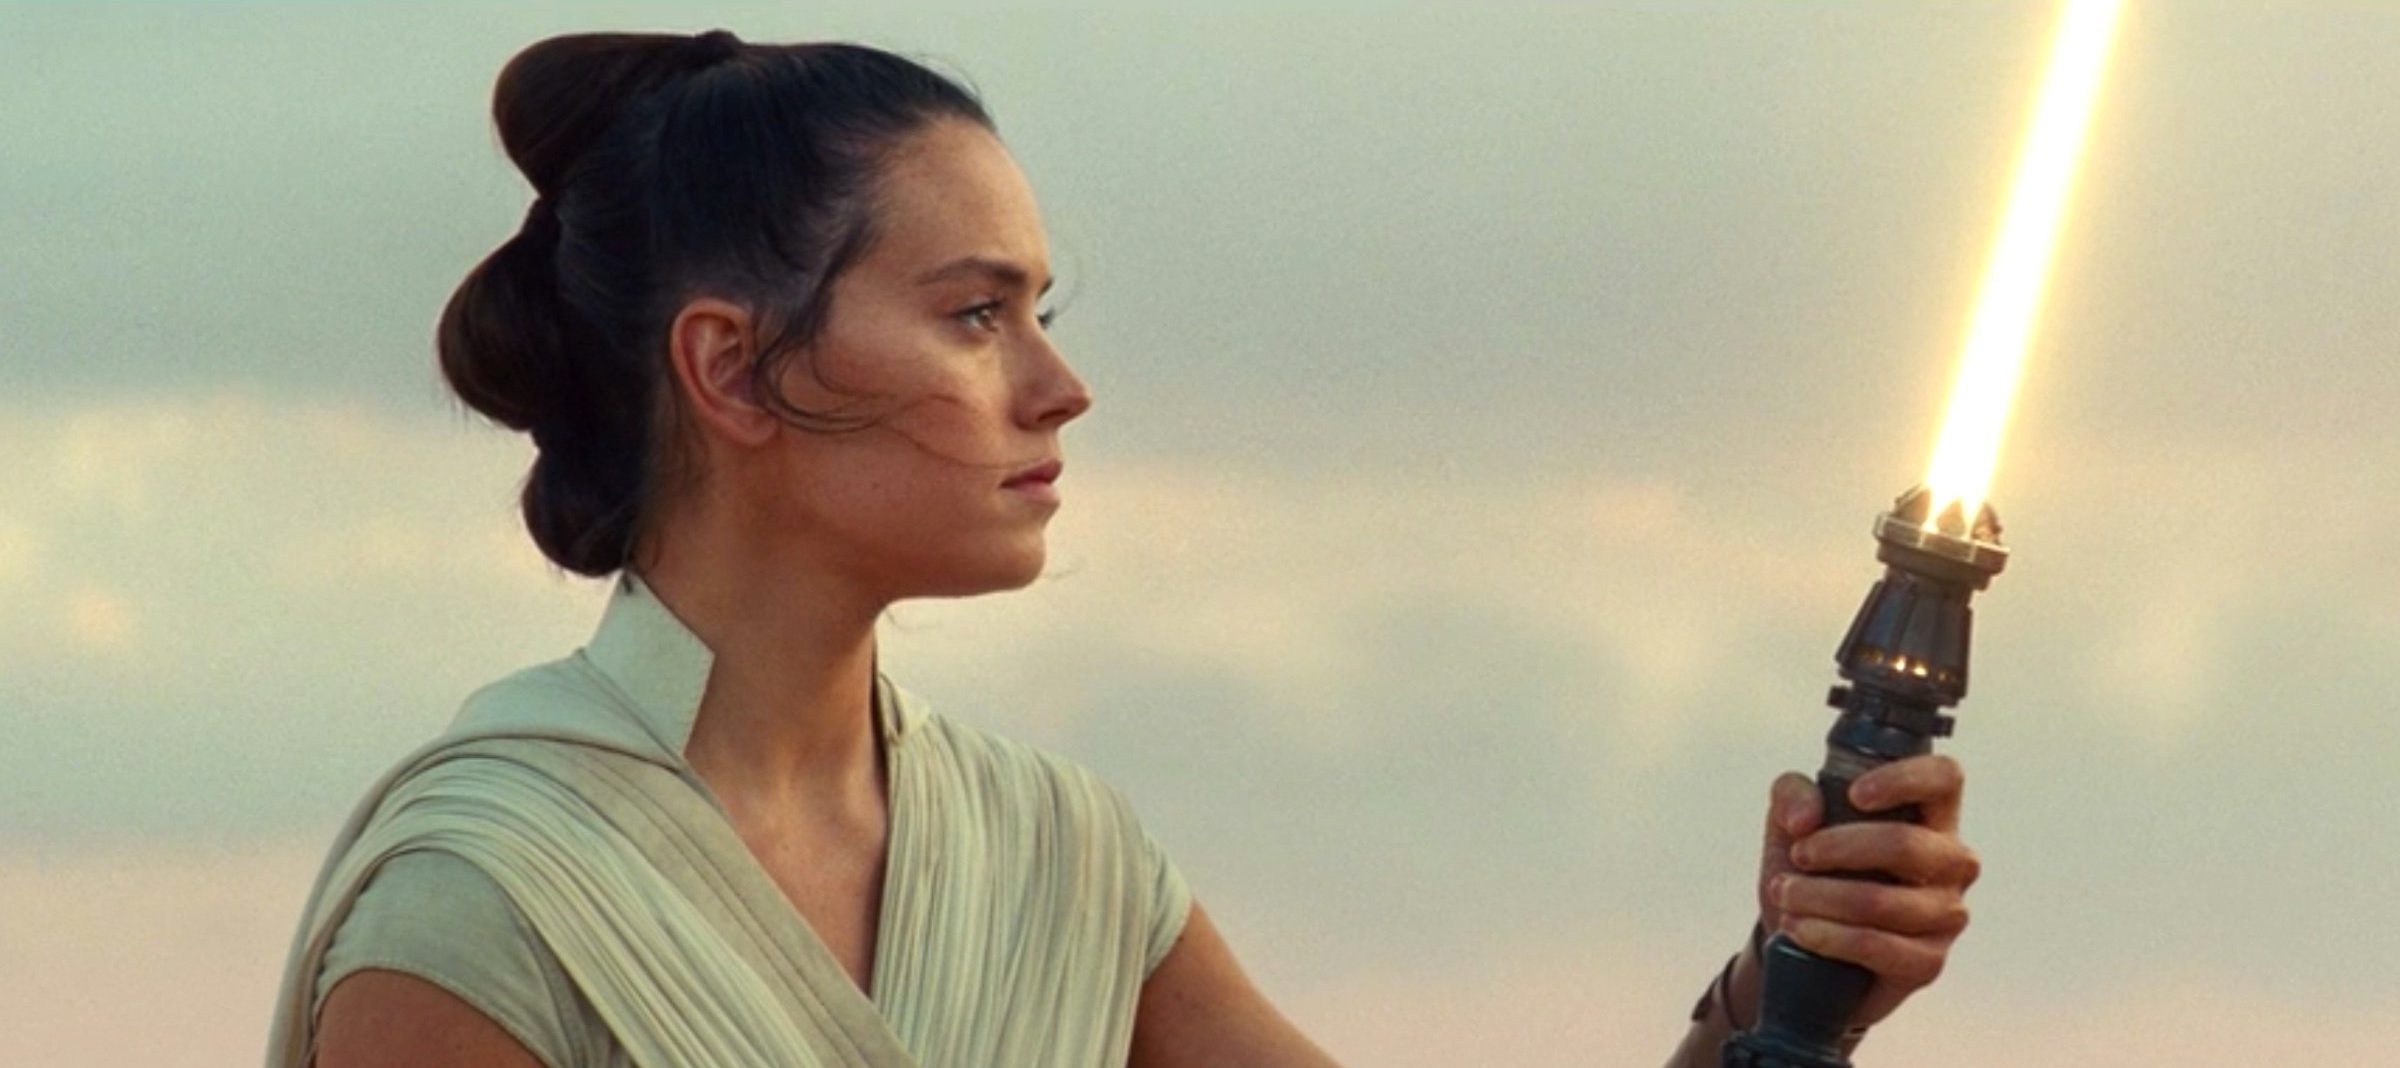 Star Wars Concept Art Rey Lightsaber Plans In Rise Of Skywalker Film